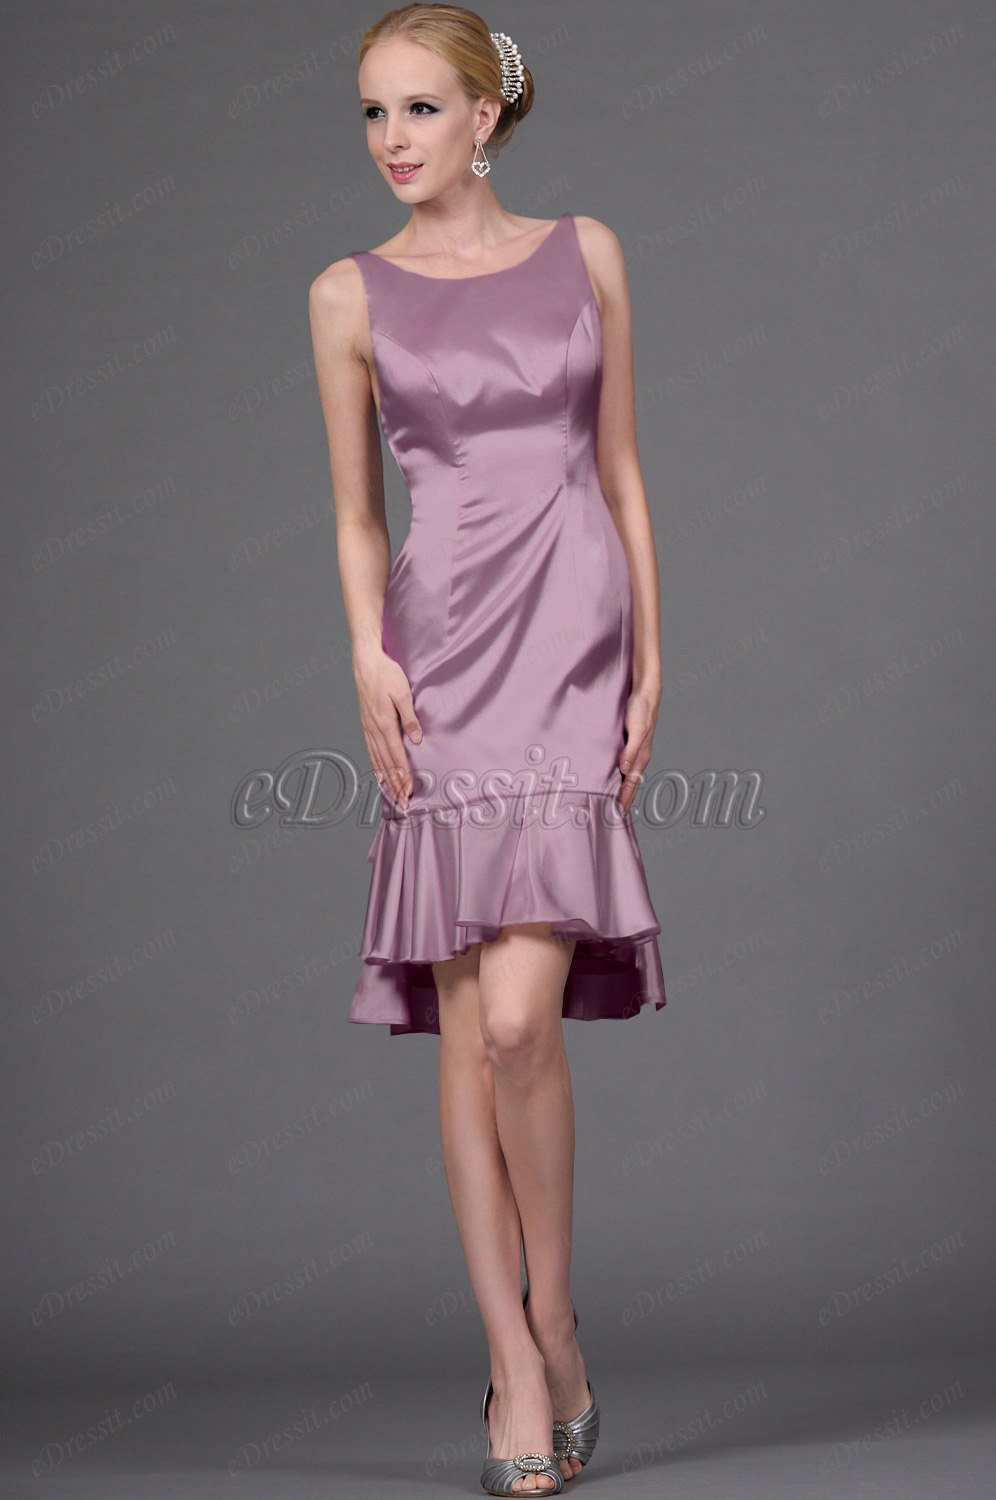 Clearance Sale !eDressit Hot Style Cocktail Dress With Sexy Back (04110507B)